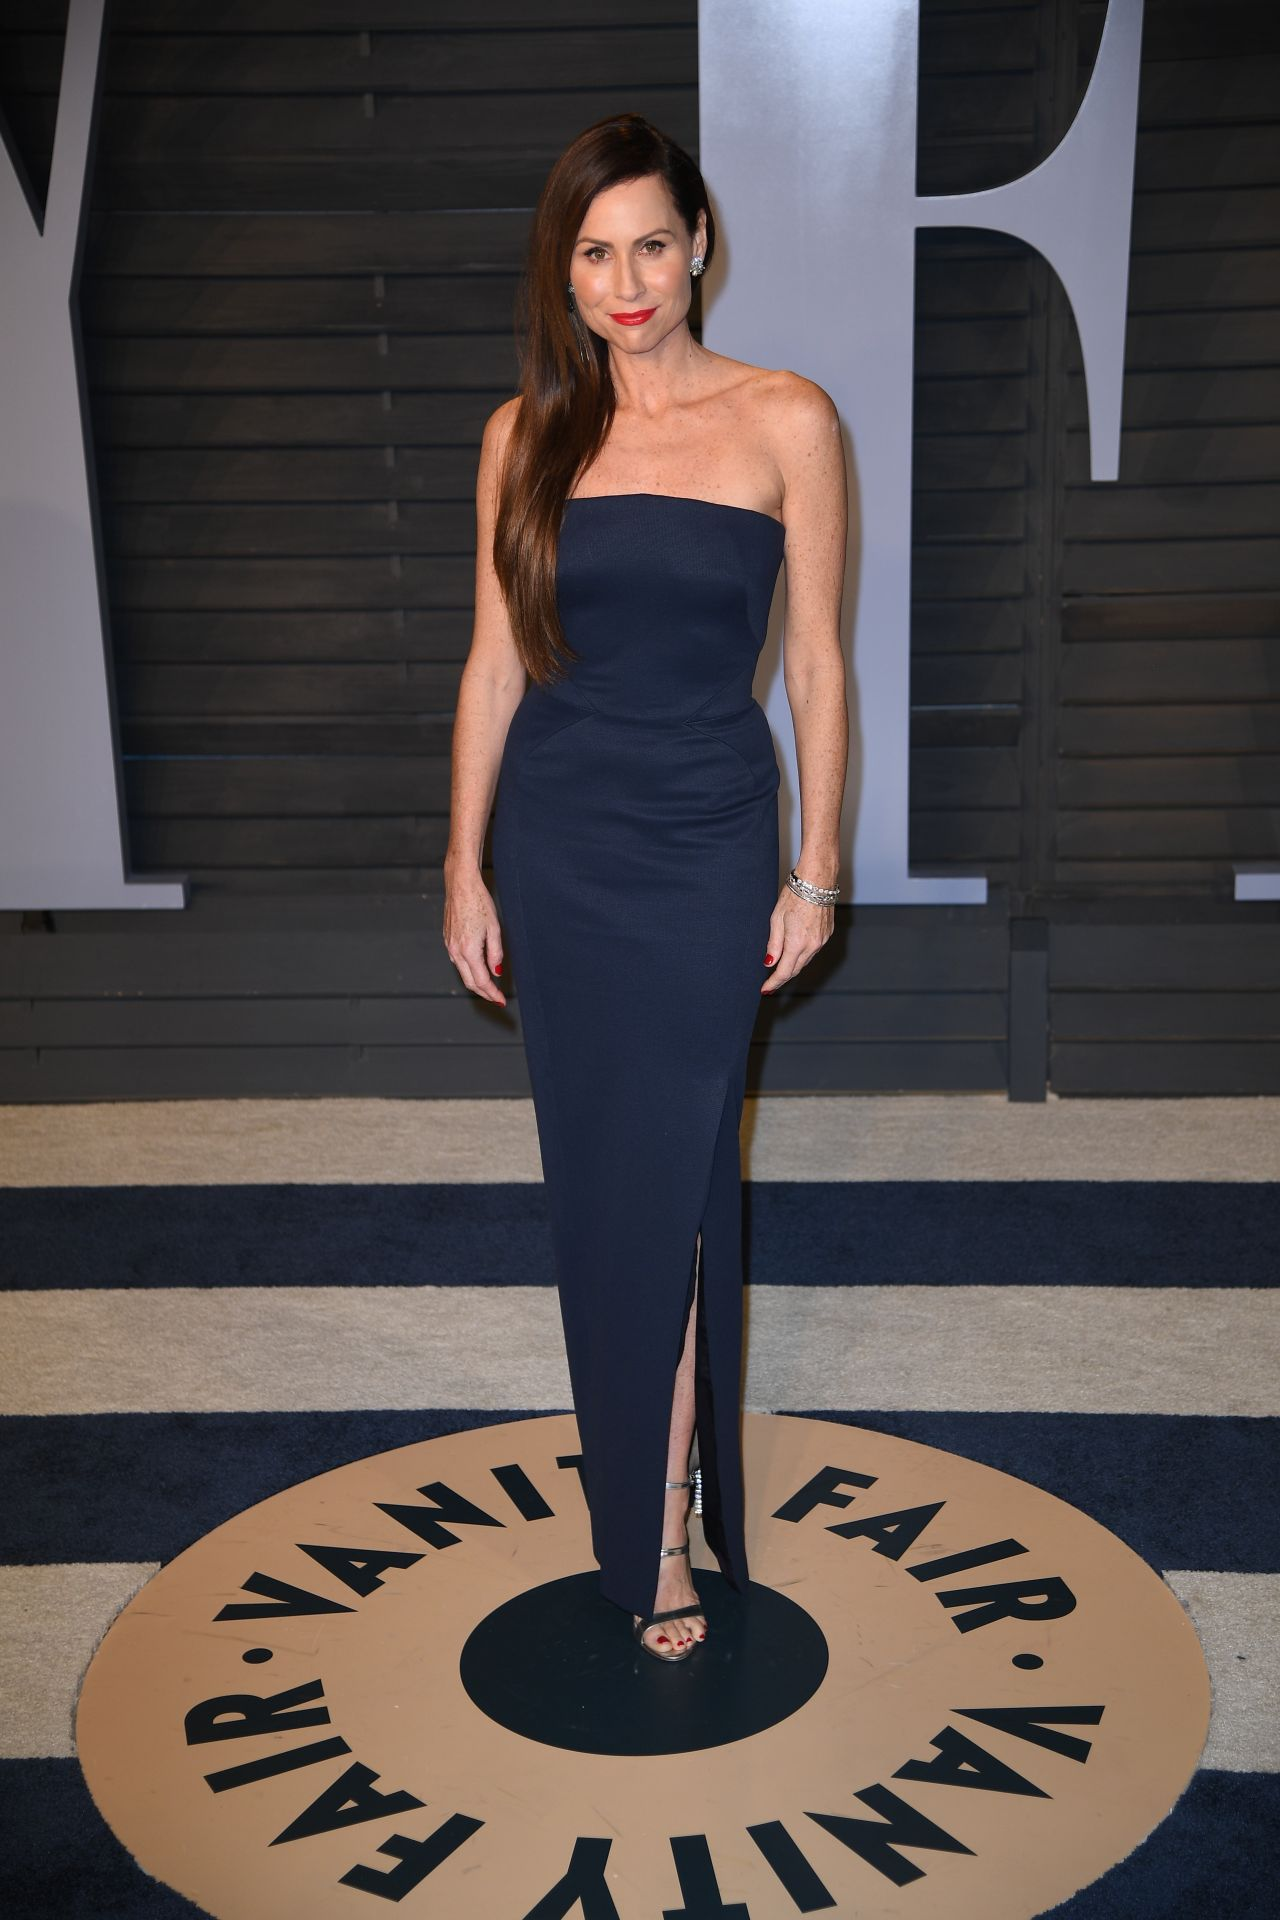 https://celebmafia.com/wp-content/uploads/2018/03/minnie-driver-2018-vanity-fair-oscar-party-in-beverly-hills-0.jpg